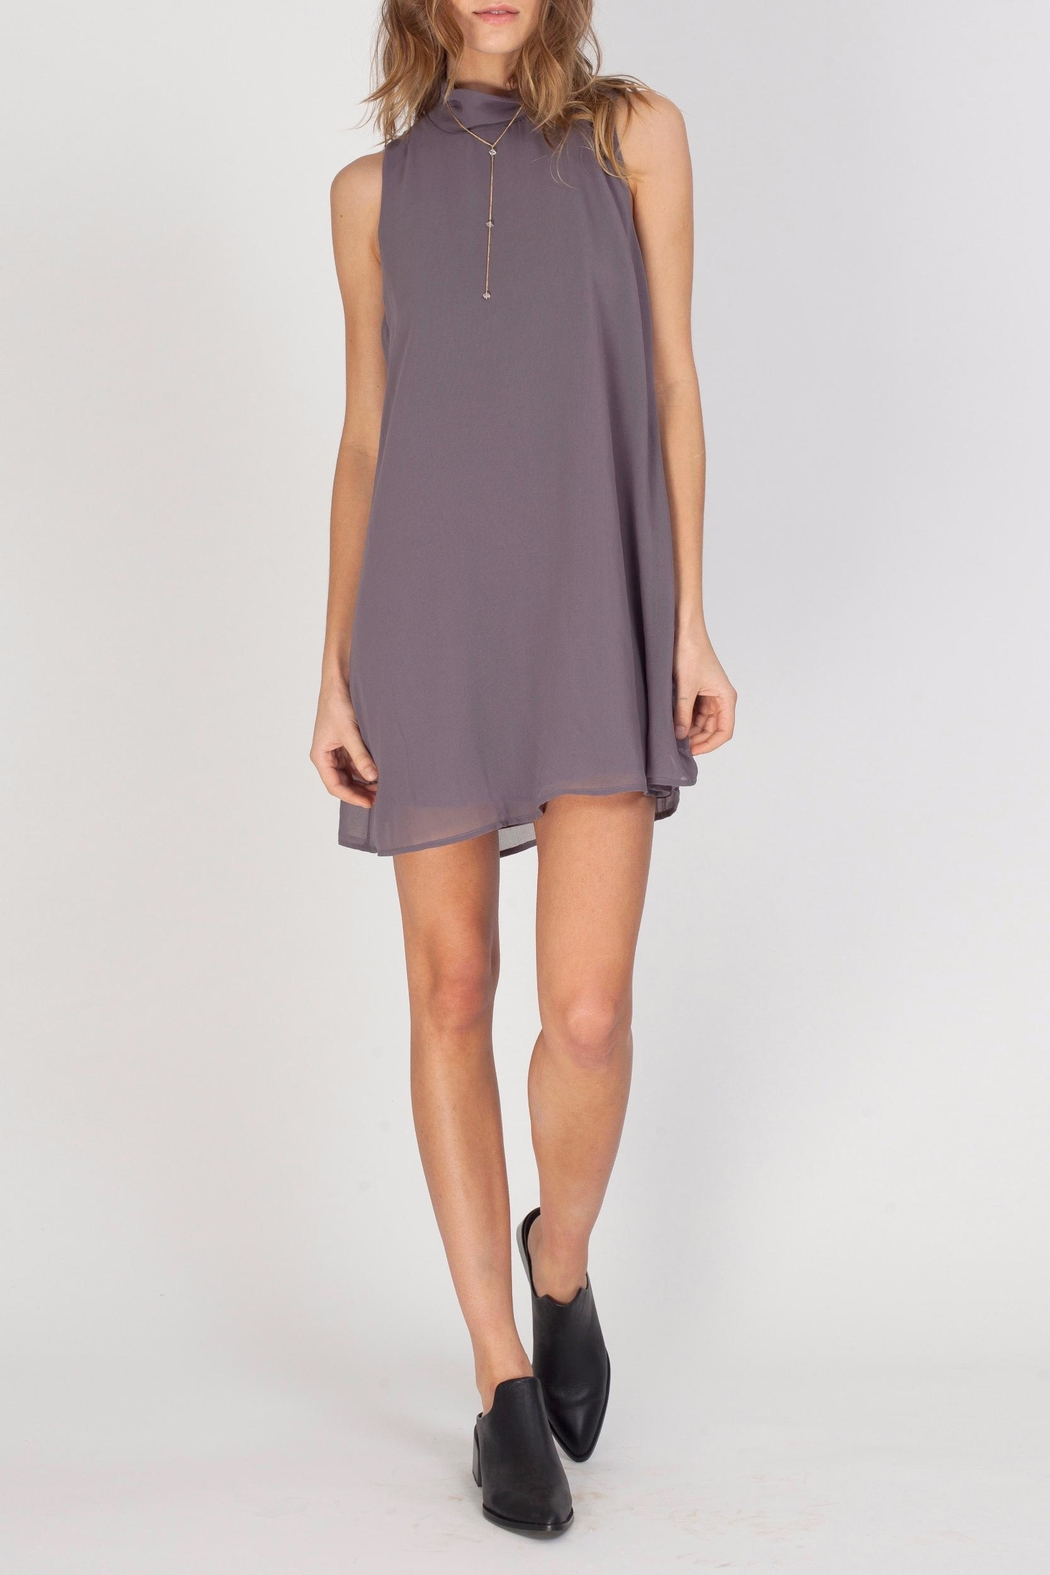 Gentle Fawn Mock Neck Dress - Front Full Image